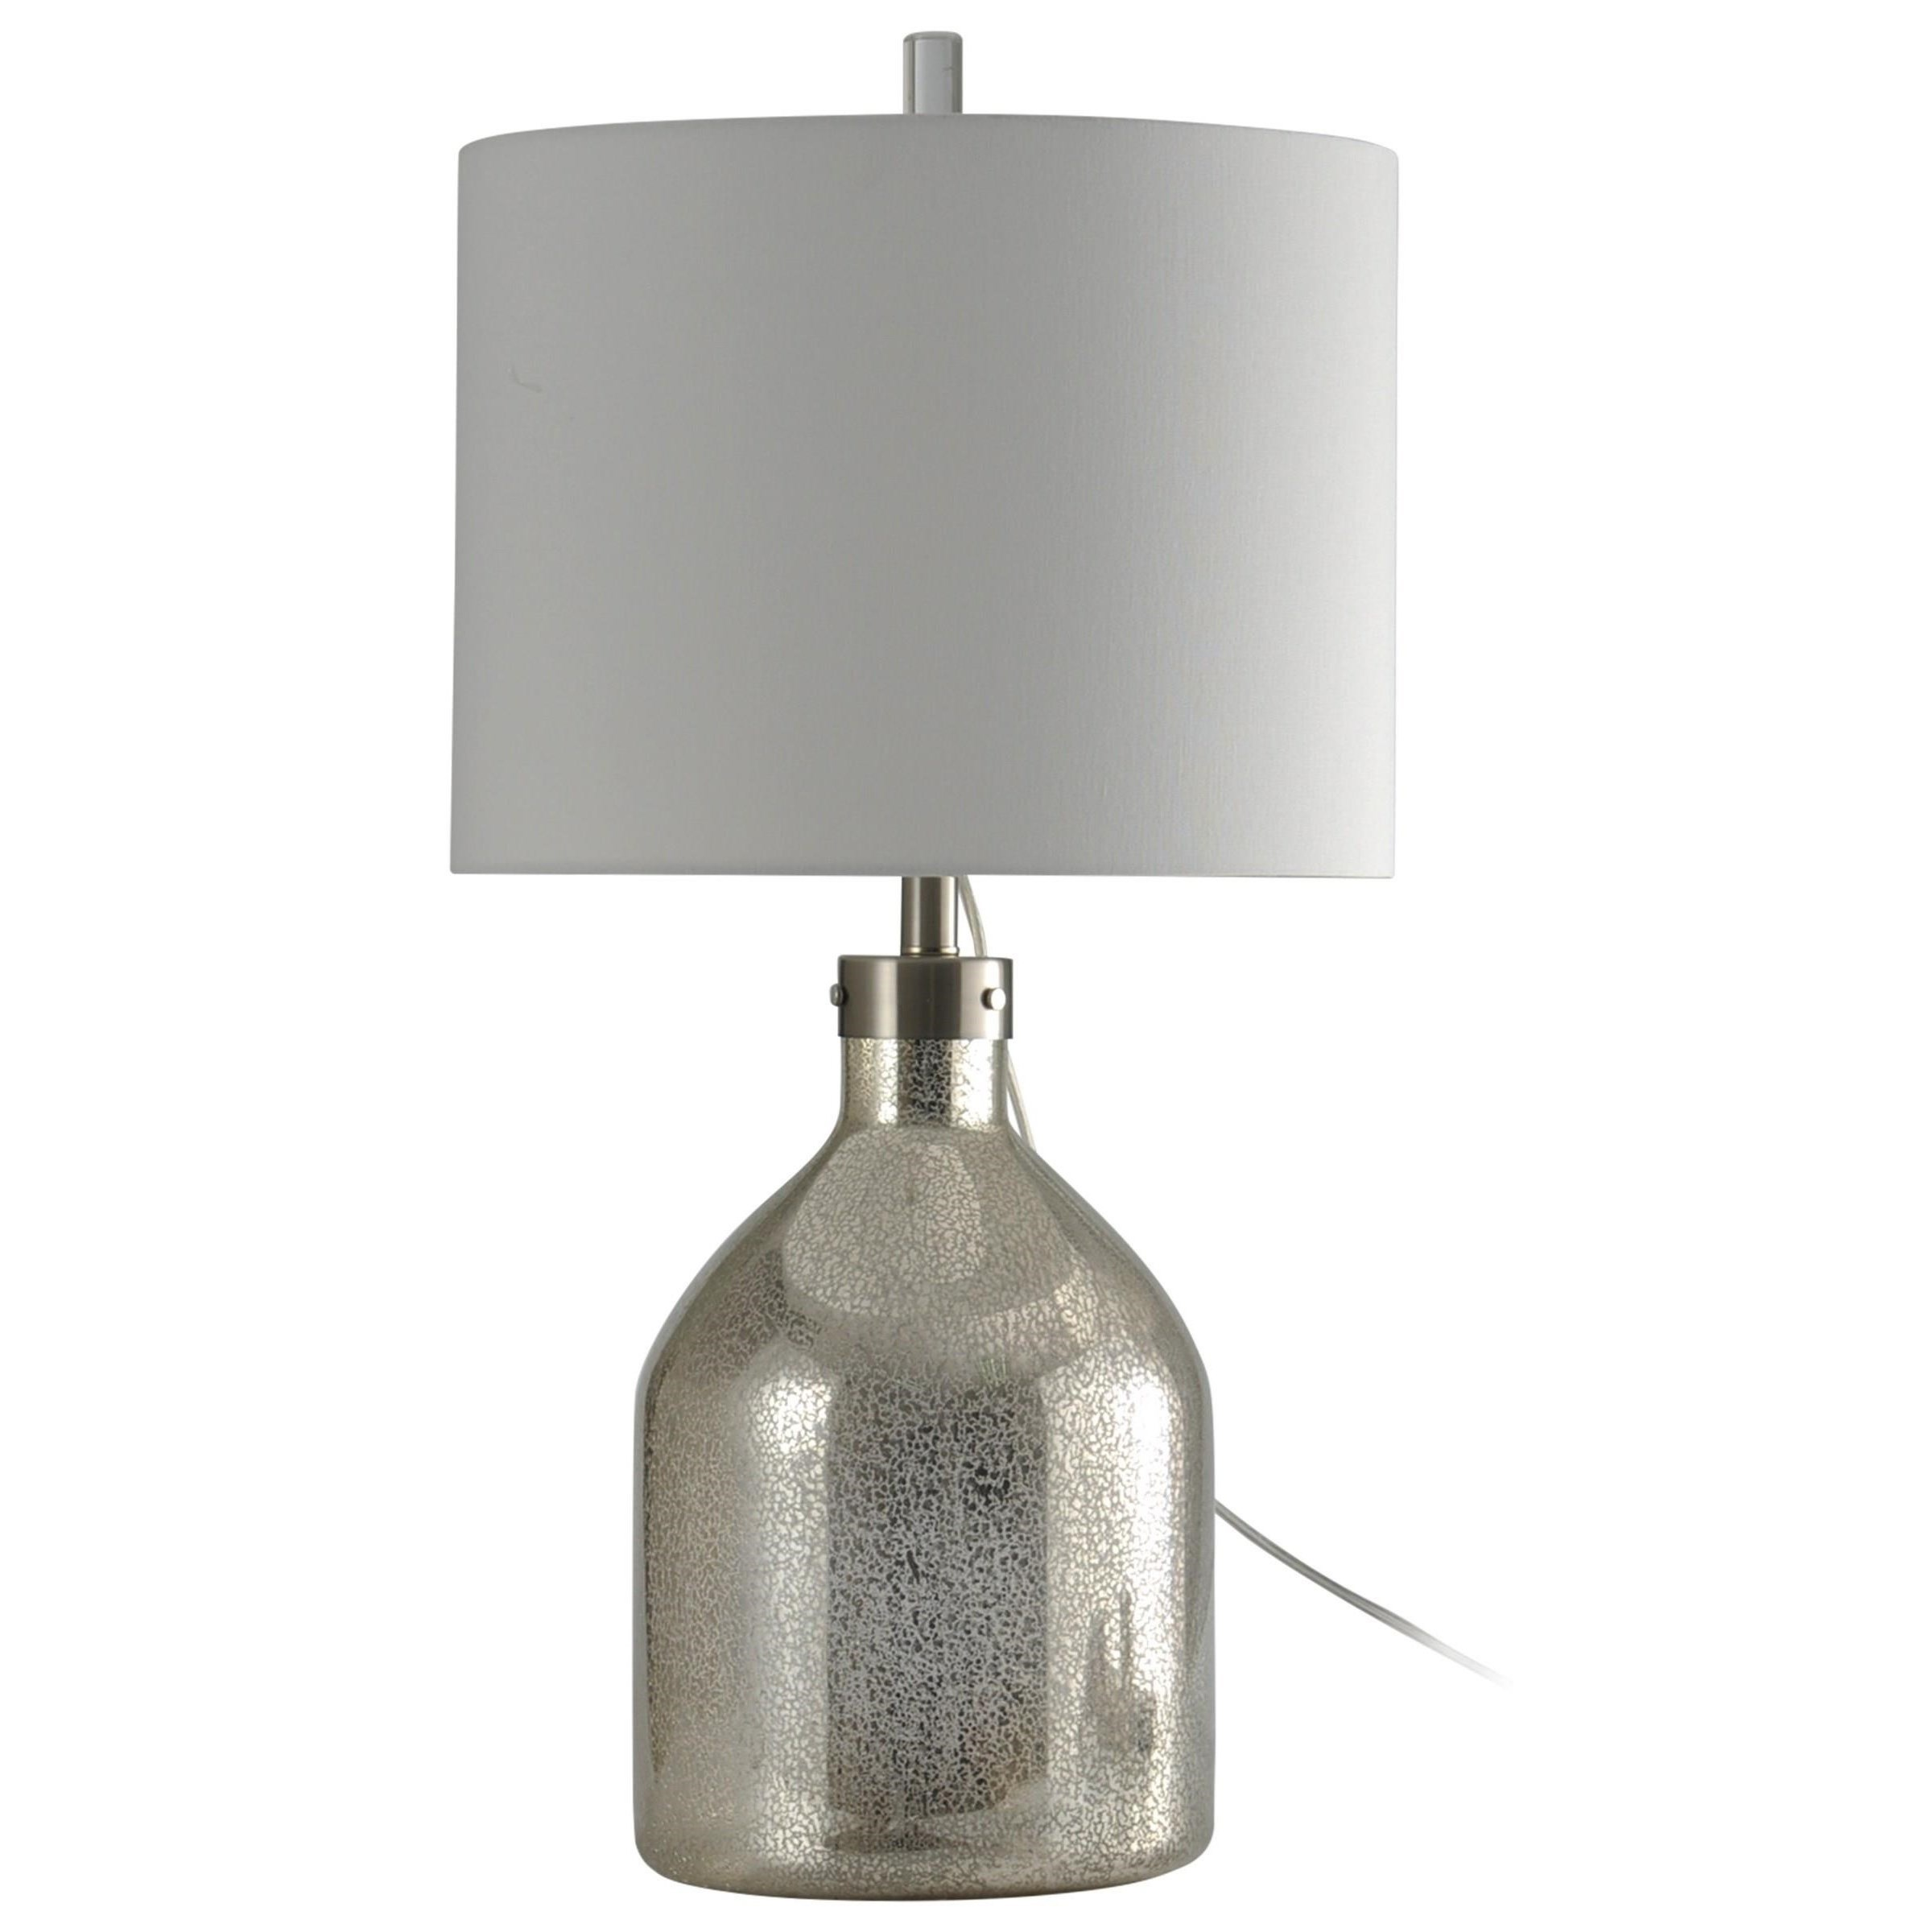 hudson furniture lighting. stylecraft lamps mercury glass table lamp hudsonu0027s furniture hudson lighting